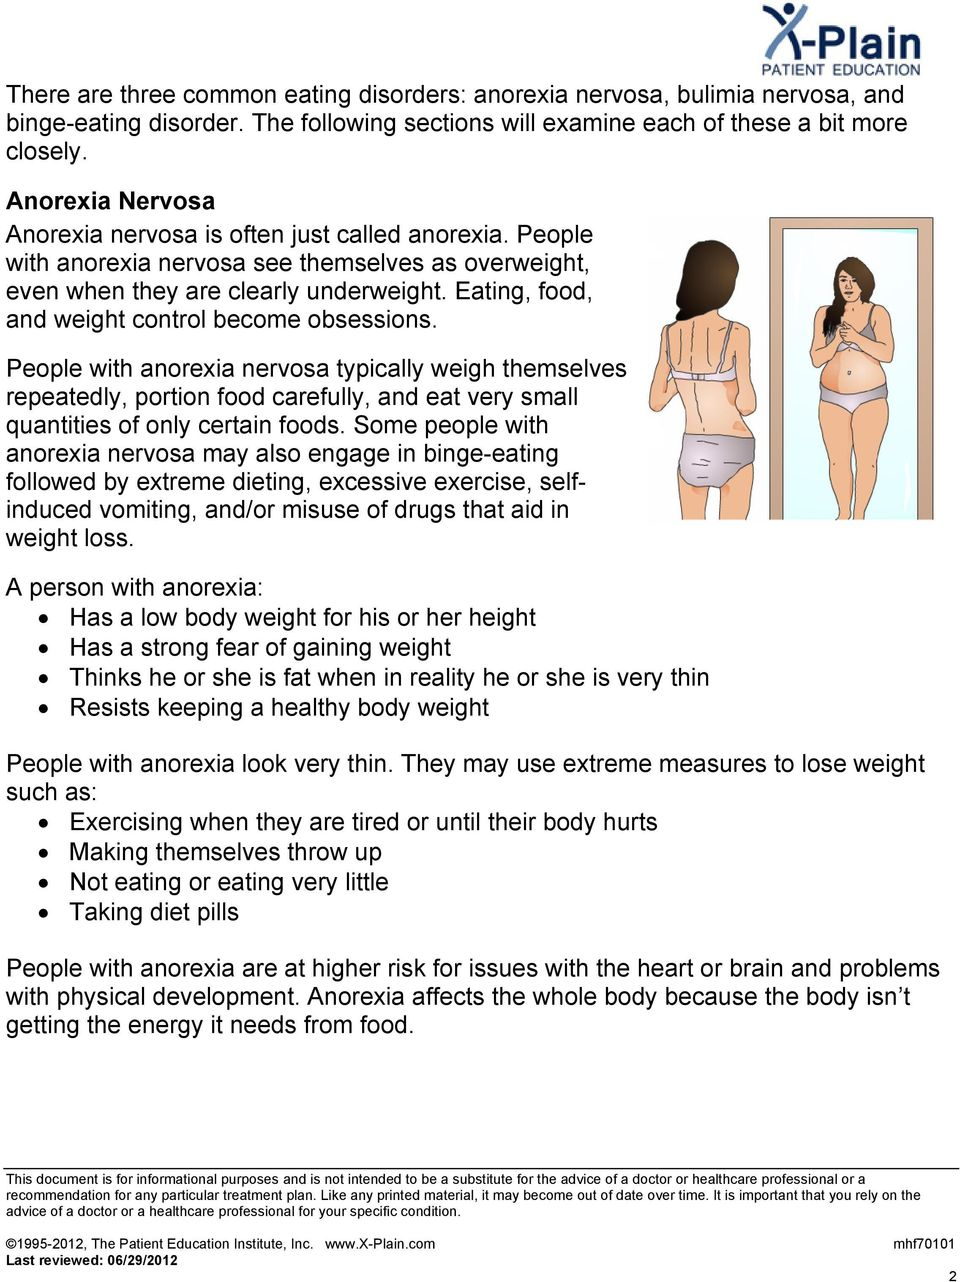 Eating, food, and weight control become obsessions. People with anorexia nervosa typically weigh themselves repeatedly, portion food carefully, and eat very small quantities of only certain foods.